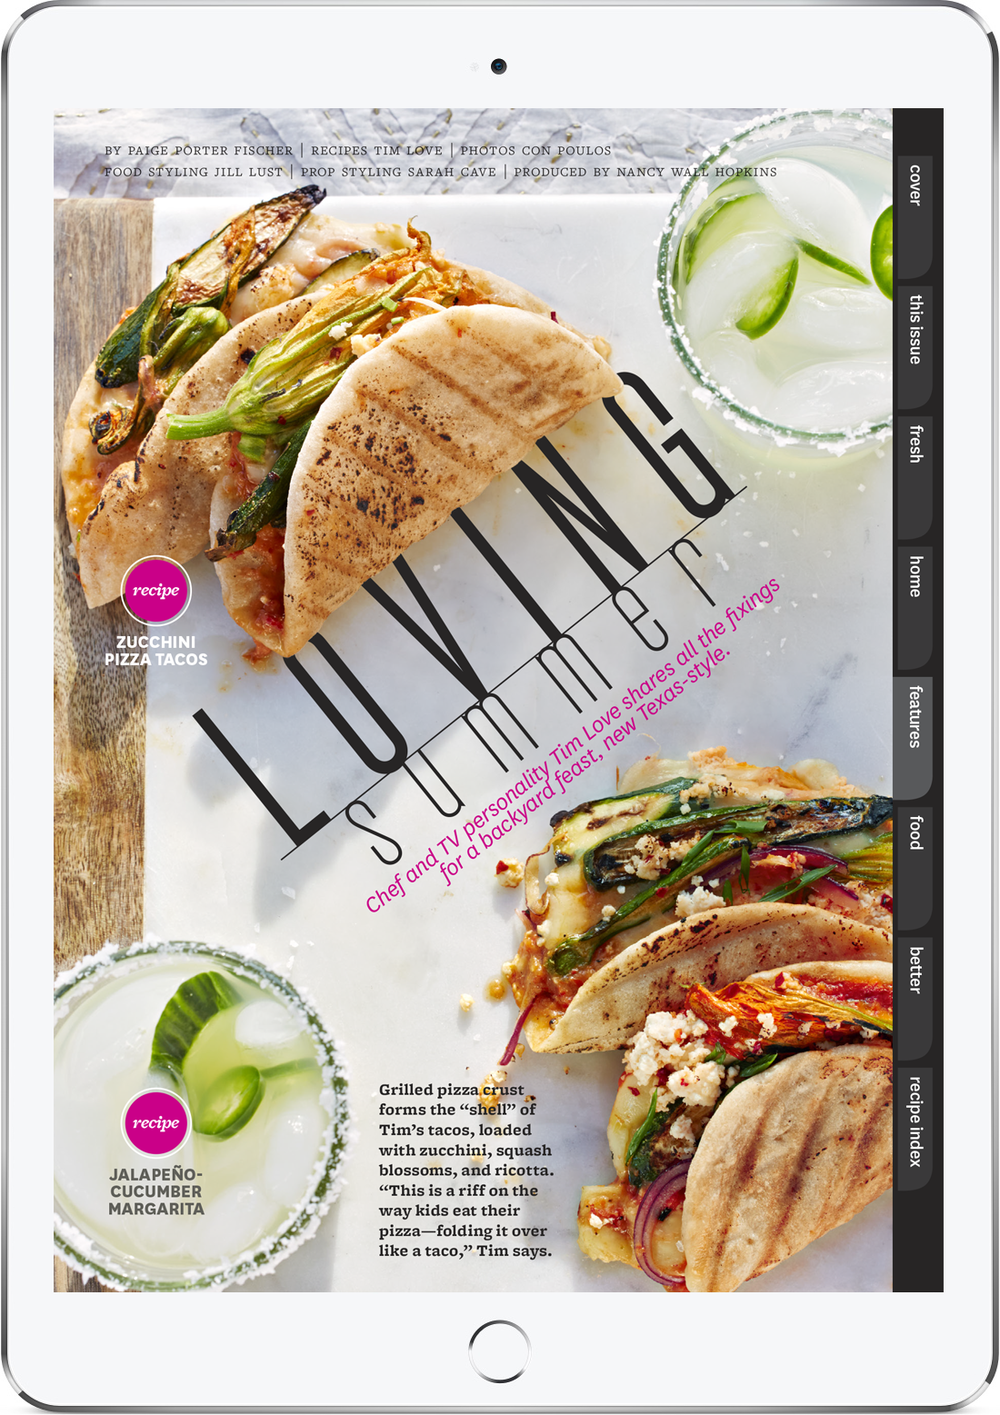 Loving Summer, June 2015 tablet edition